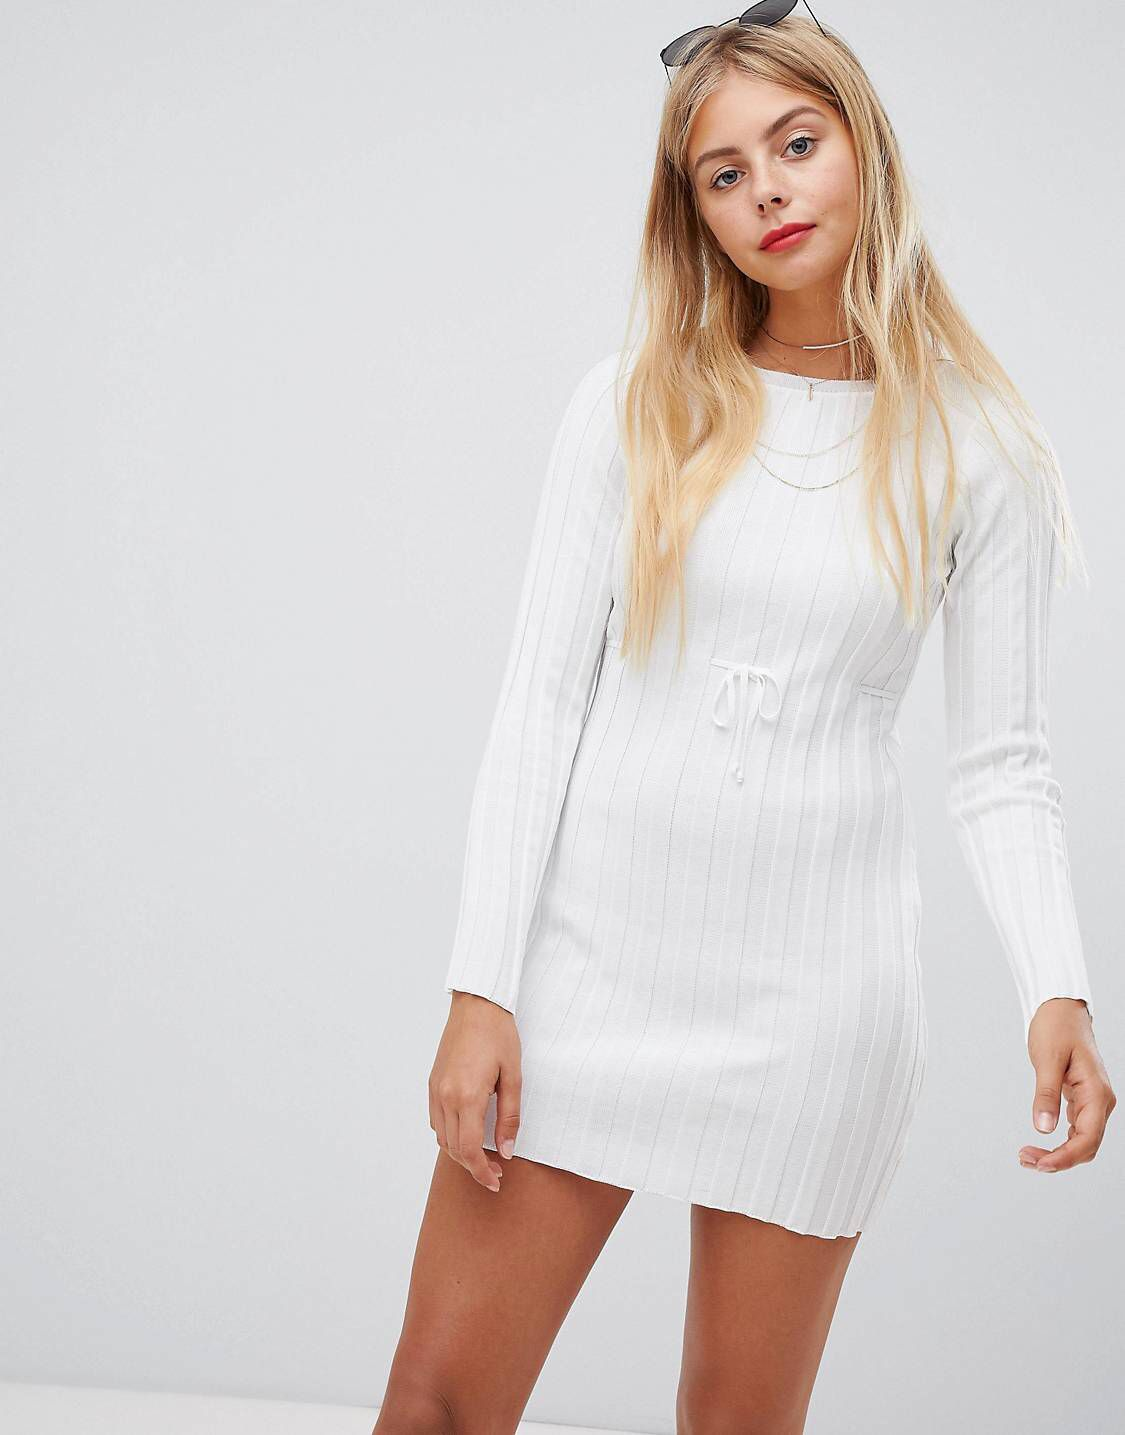 0b0705da5409 Just when I thought I didn't need something new from ASOS, I kinda ...